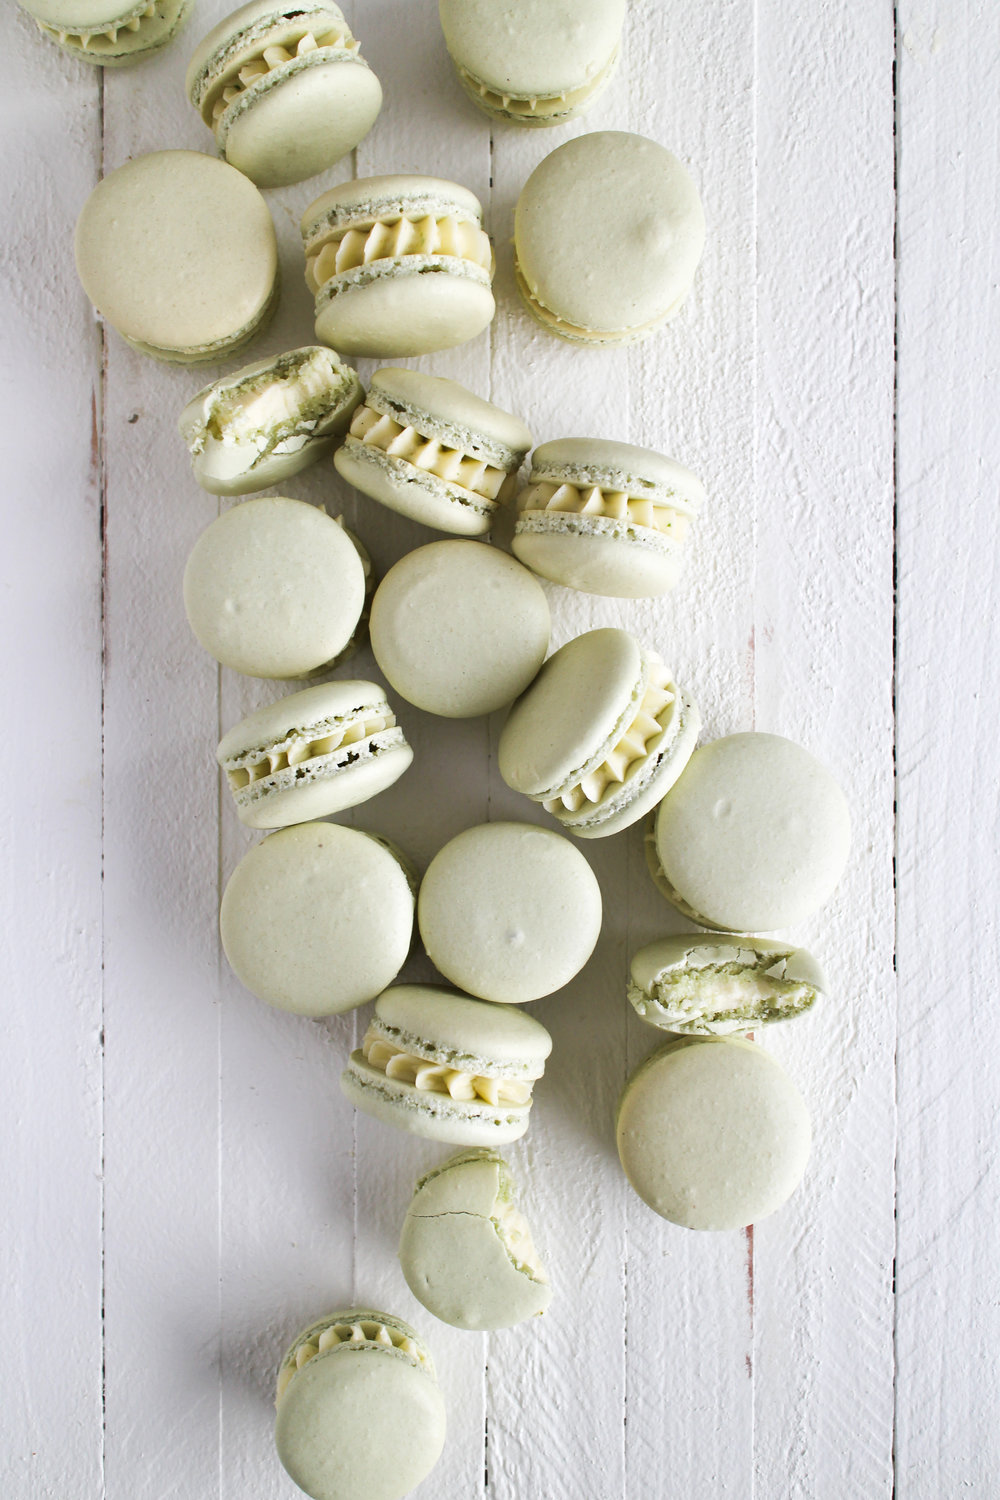 Kaffir Lime Macarons - classic vanilla shell with kaffir lime infused german buttercream by Fox and Crane